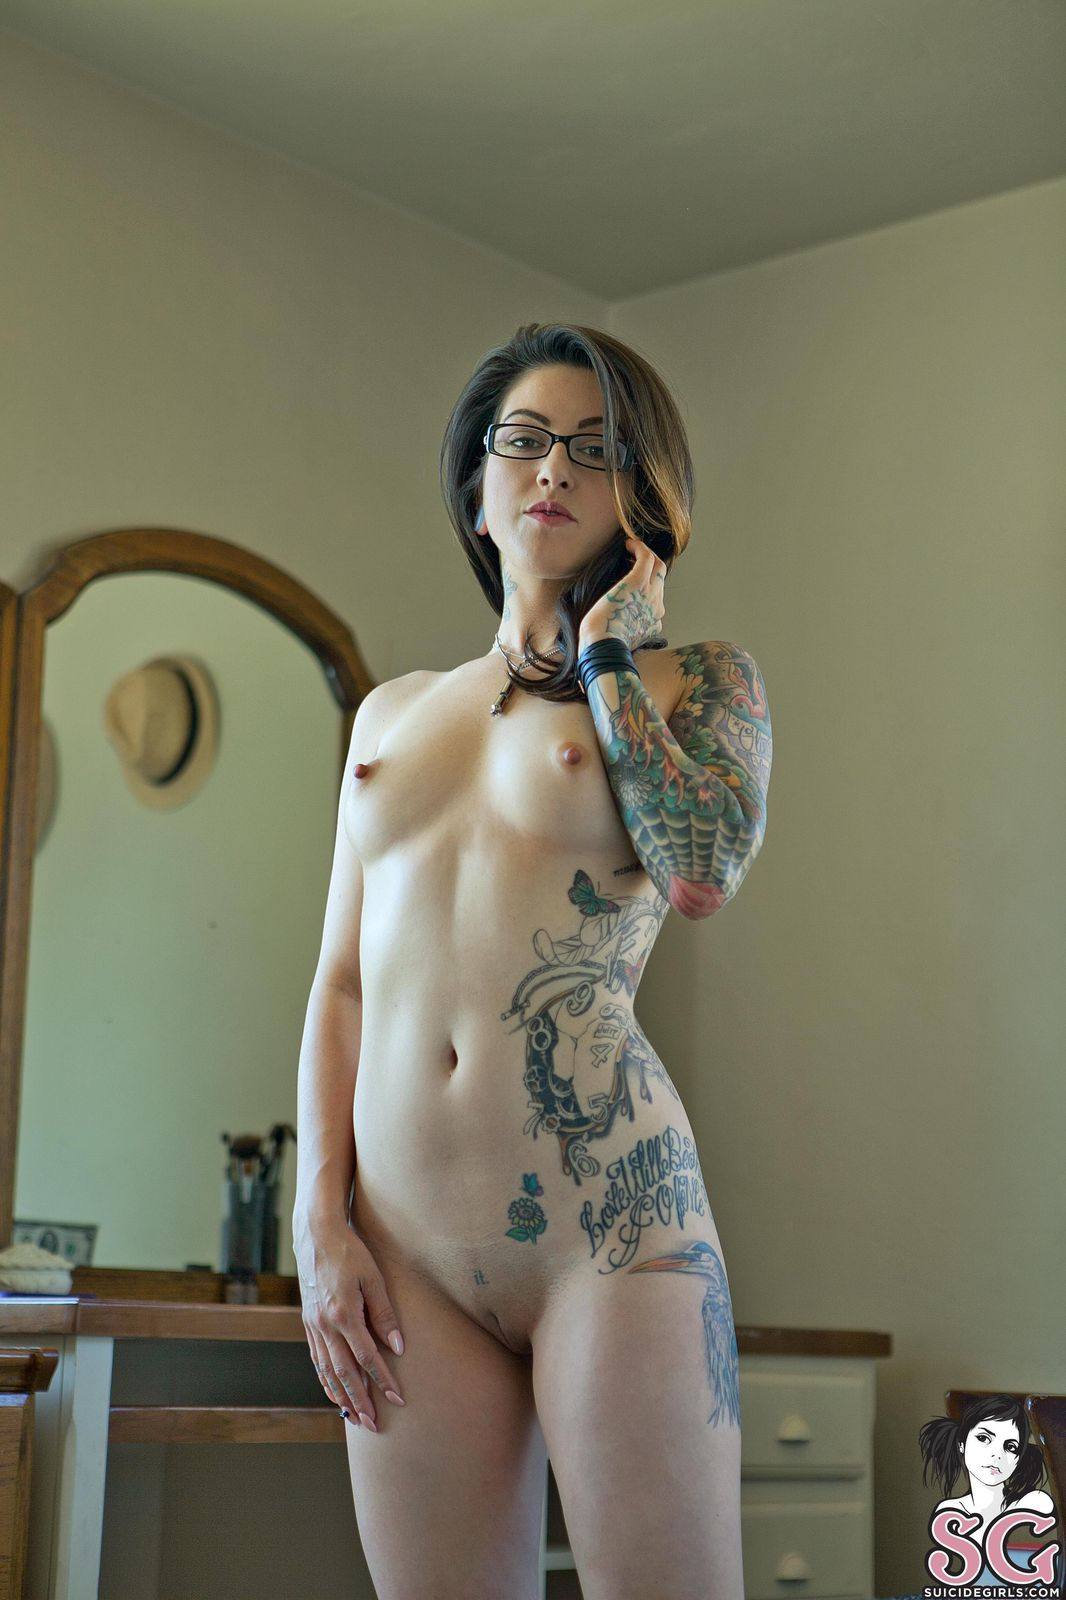 pawn stars suicide girl